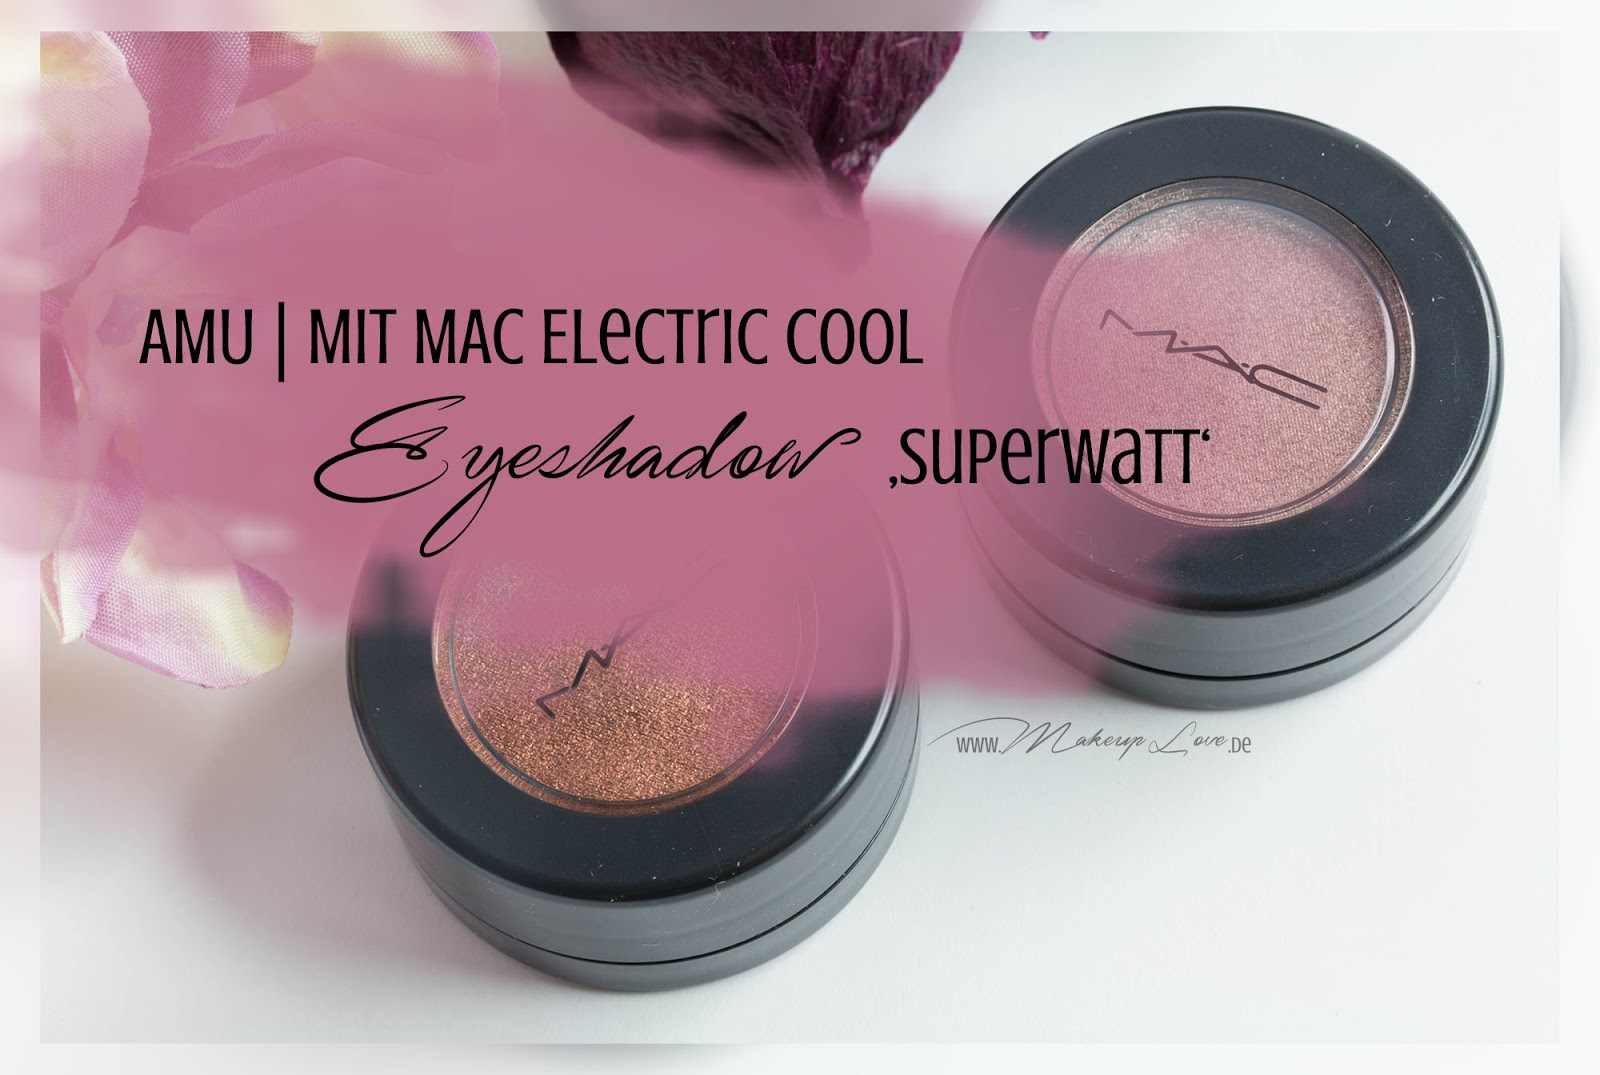 AMU Look MAC Electric Cool Eyeshadow Superwatt